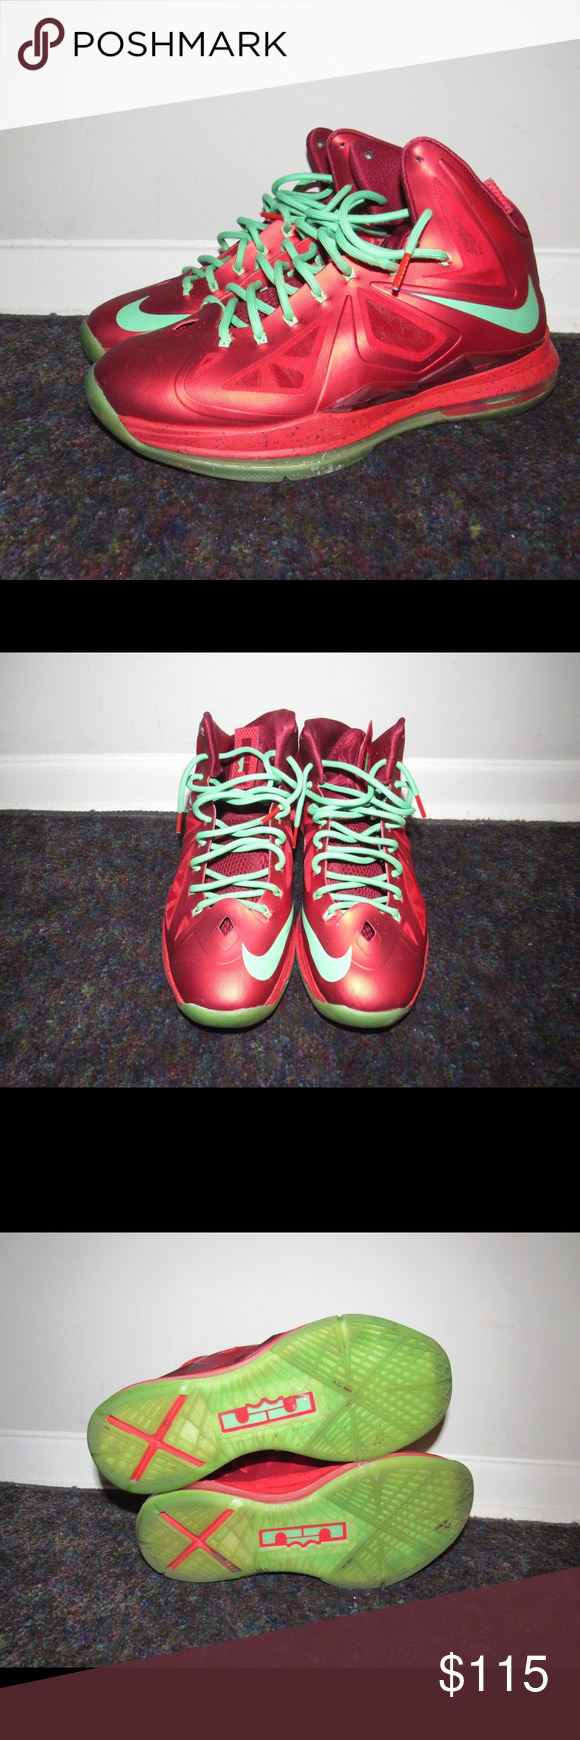 cheap for discount 90eee 6a294 NIKE LEBRON X TEN CHRISTMAS RED GREEN SIZE 9.5 - Used Nike Lebron X 541100-600  Basketball 10 Christmas Pack Red Tourmaline In Size 9.5 - Comes without ...